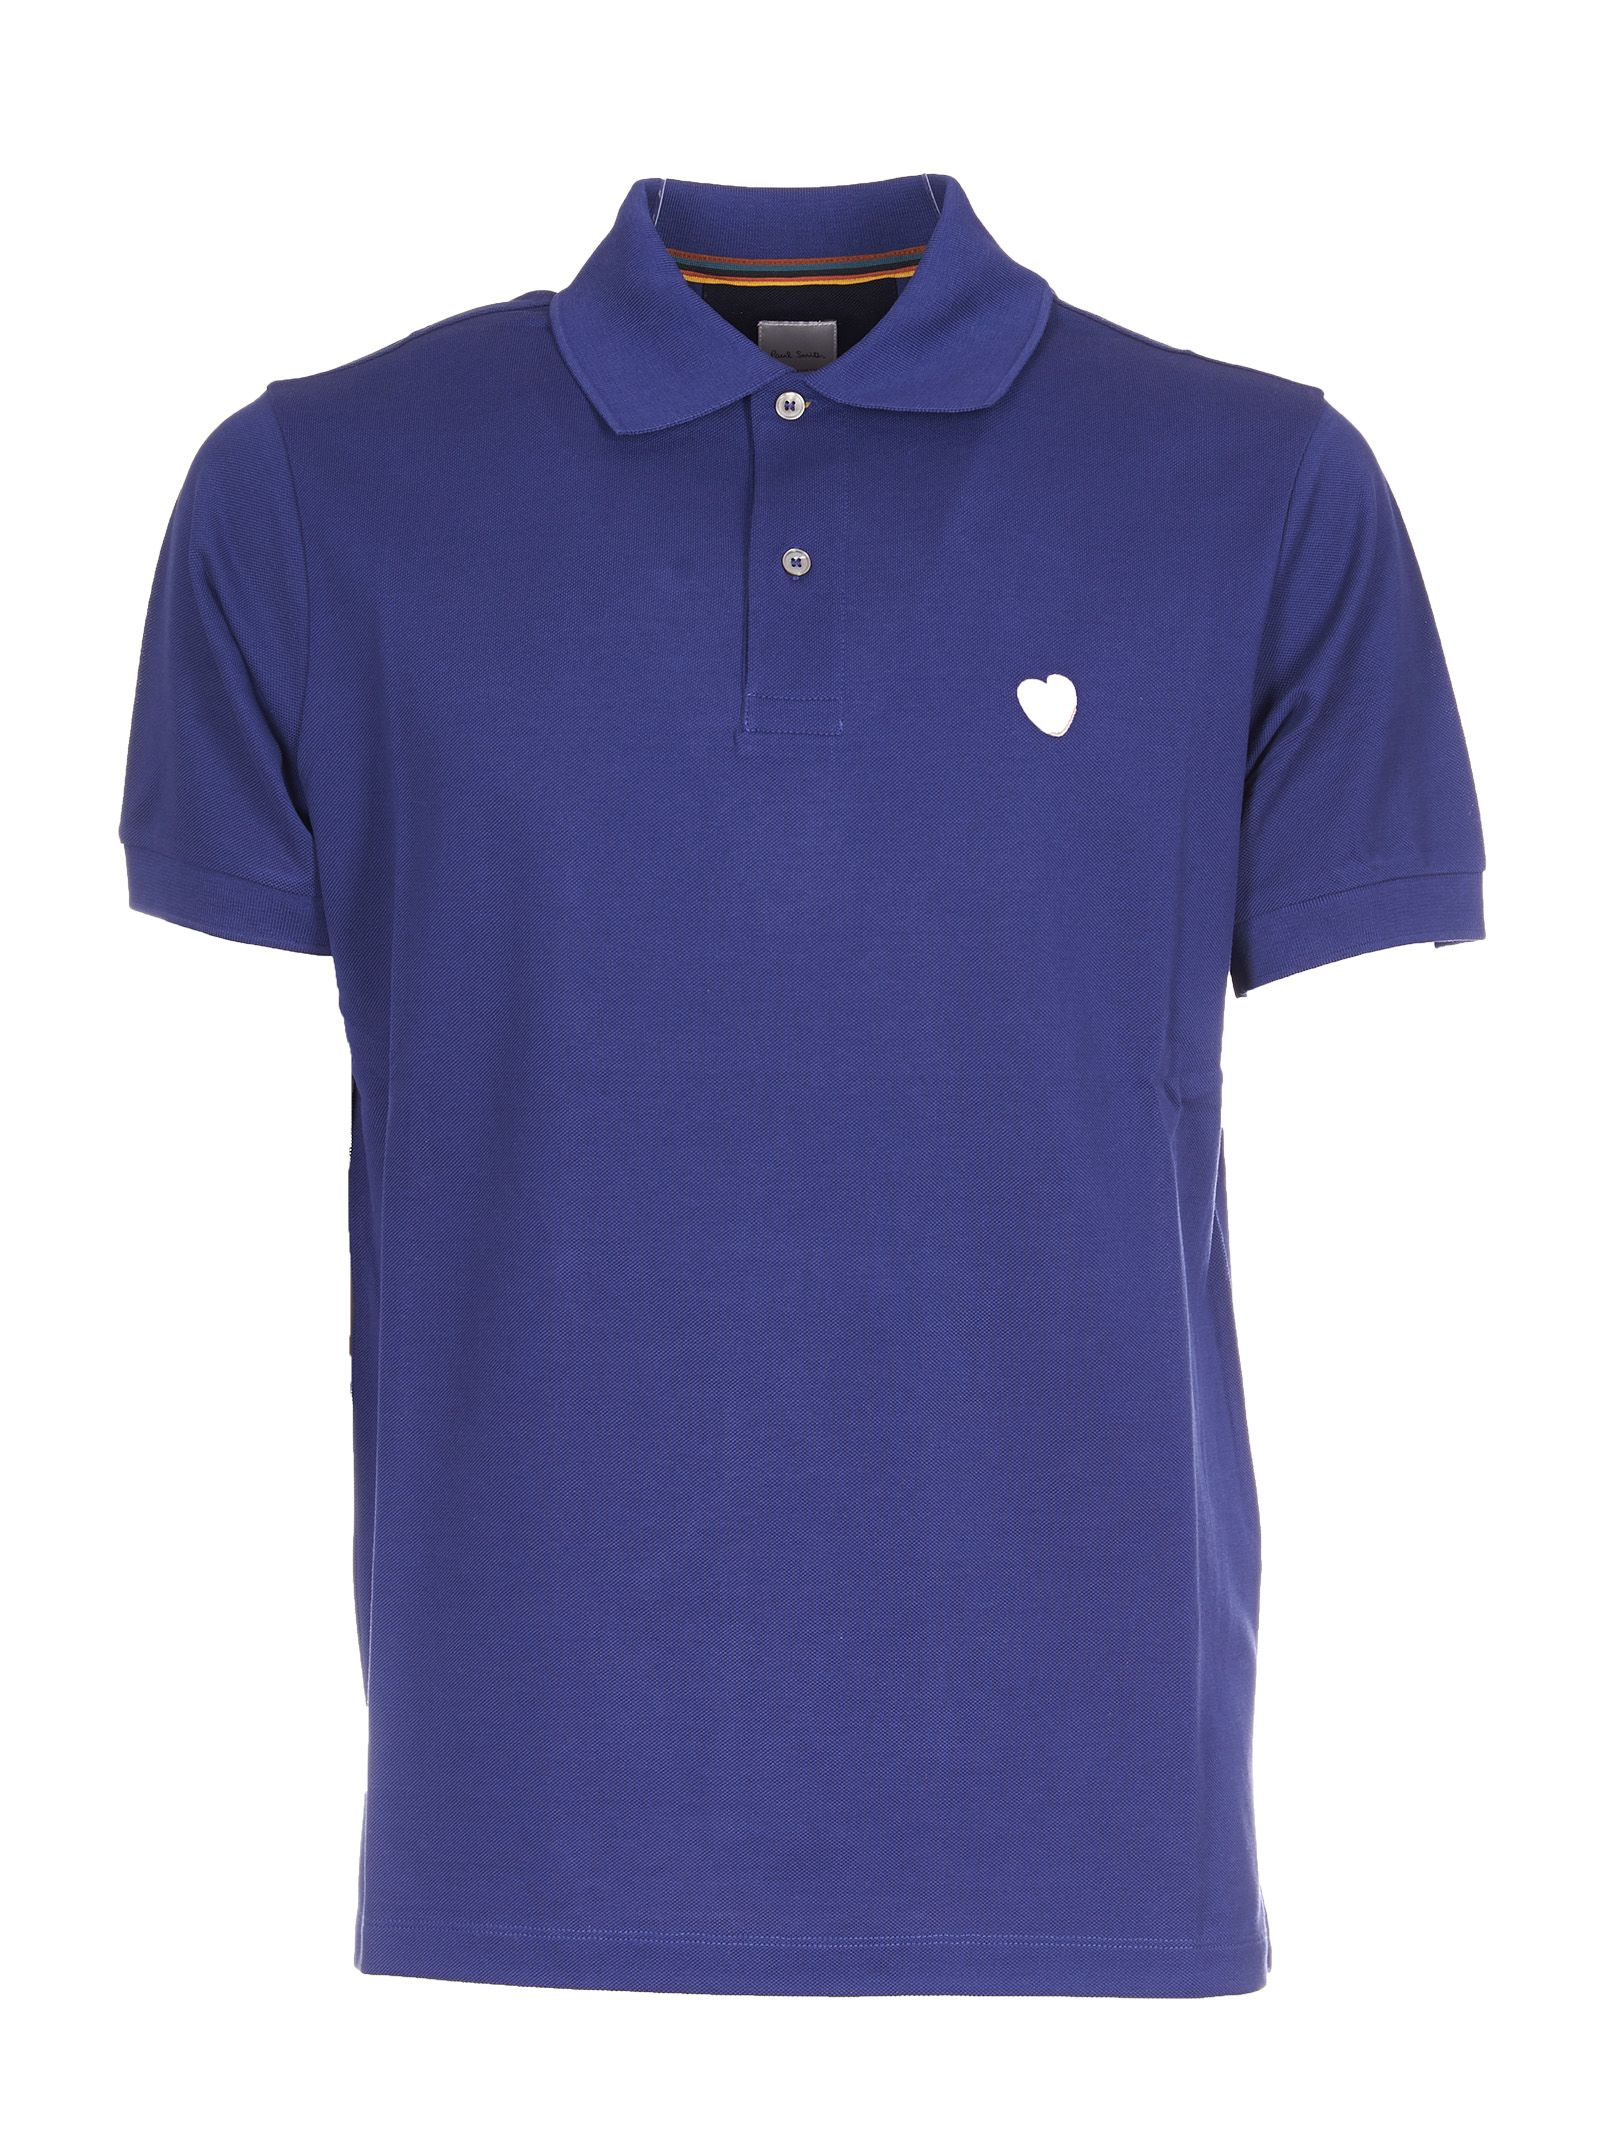 Paul Smith Embroidered Polo Shirt